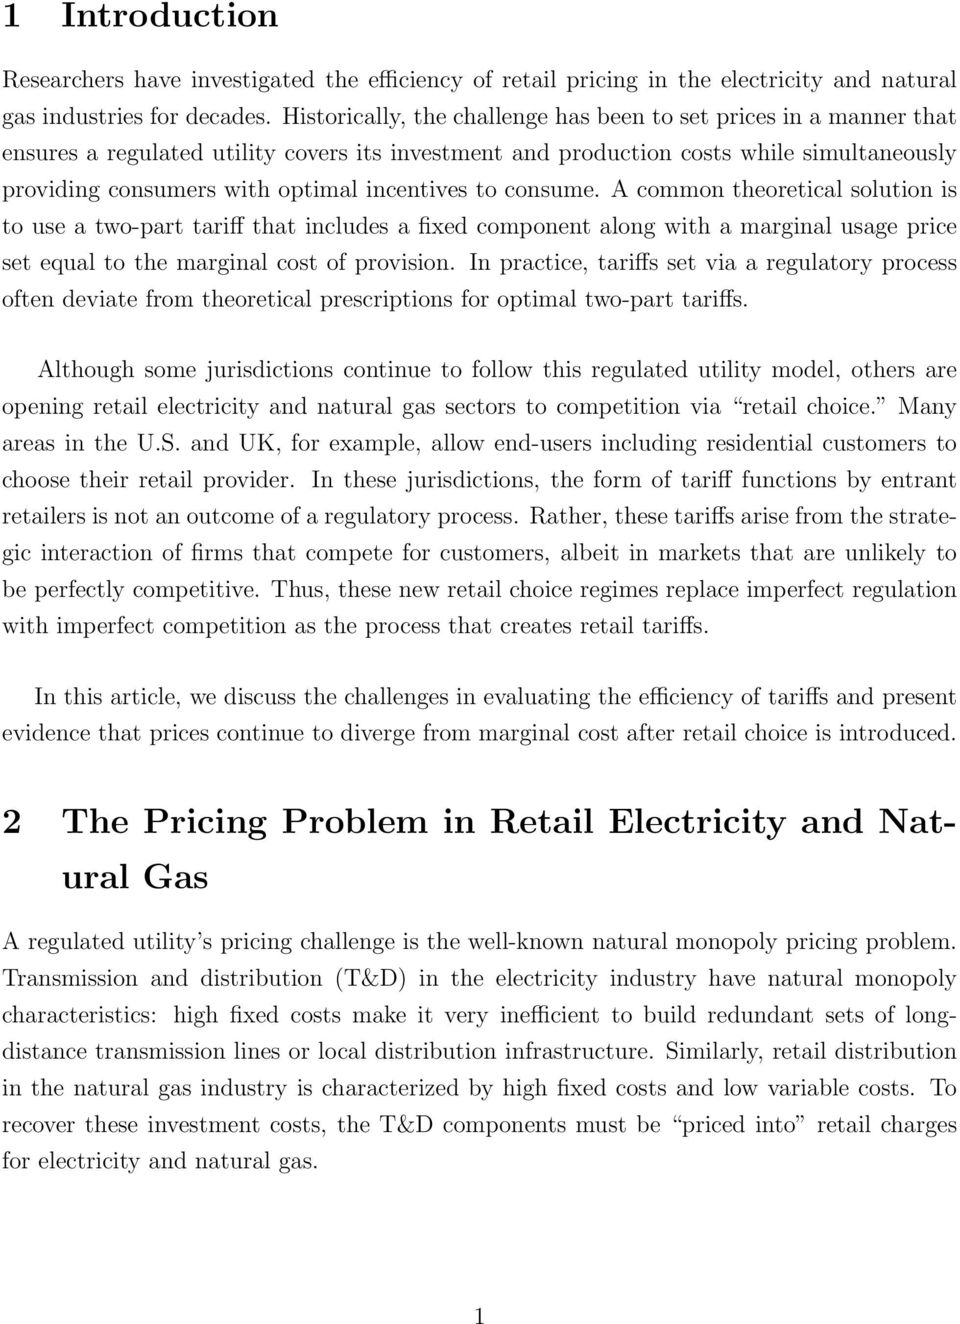 incentives to consume. A common theoretical solution is to use a two-part tariff that includes a fixed component along with a marginal usage price set equal to the marginal cost of provision.